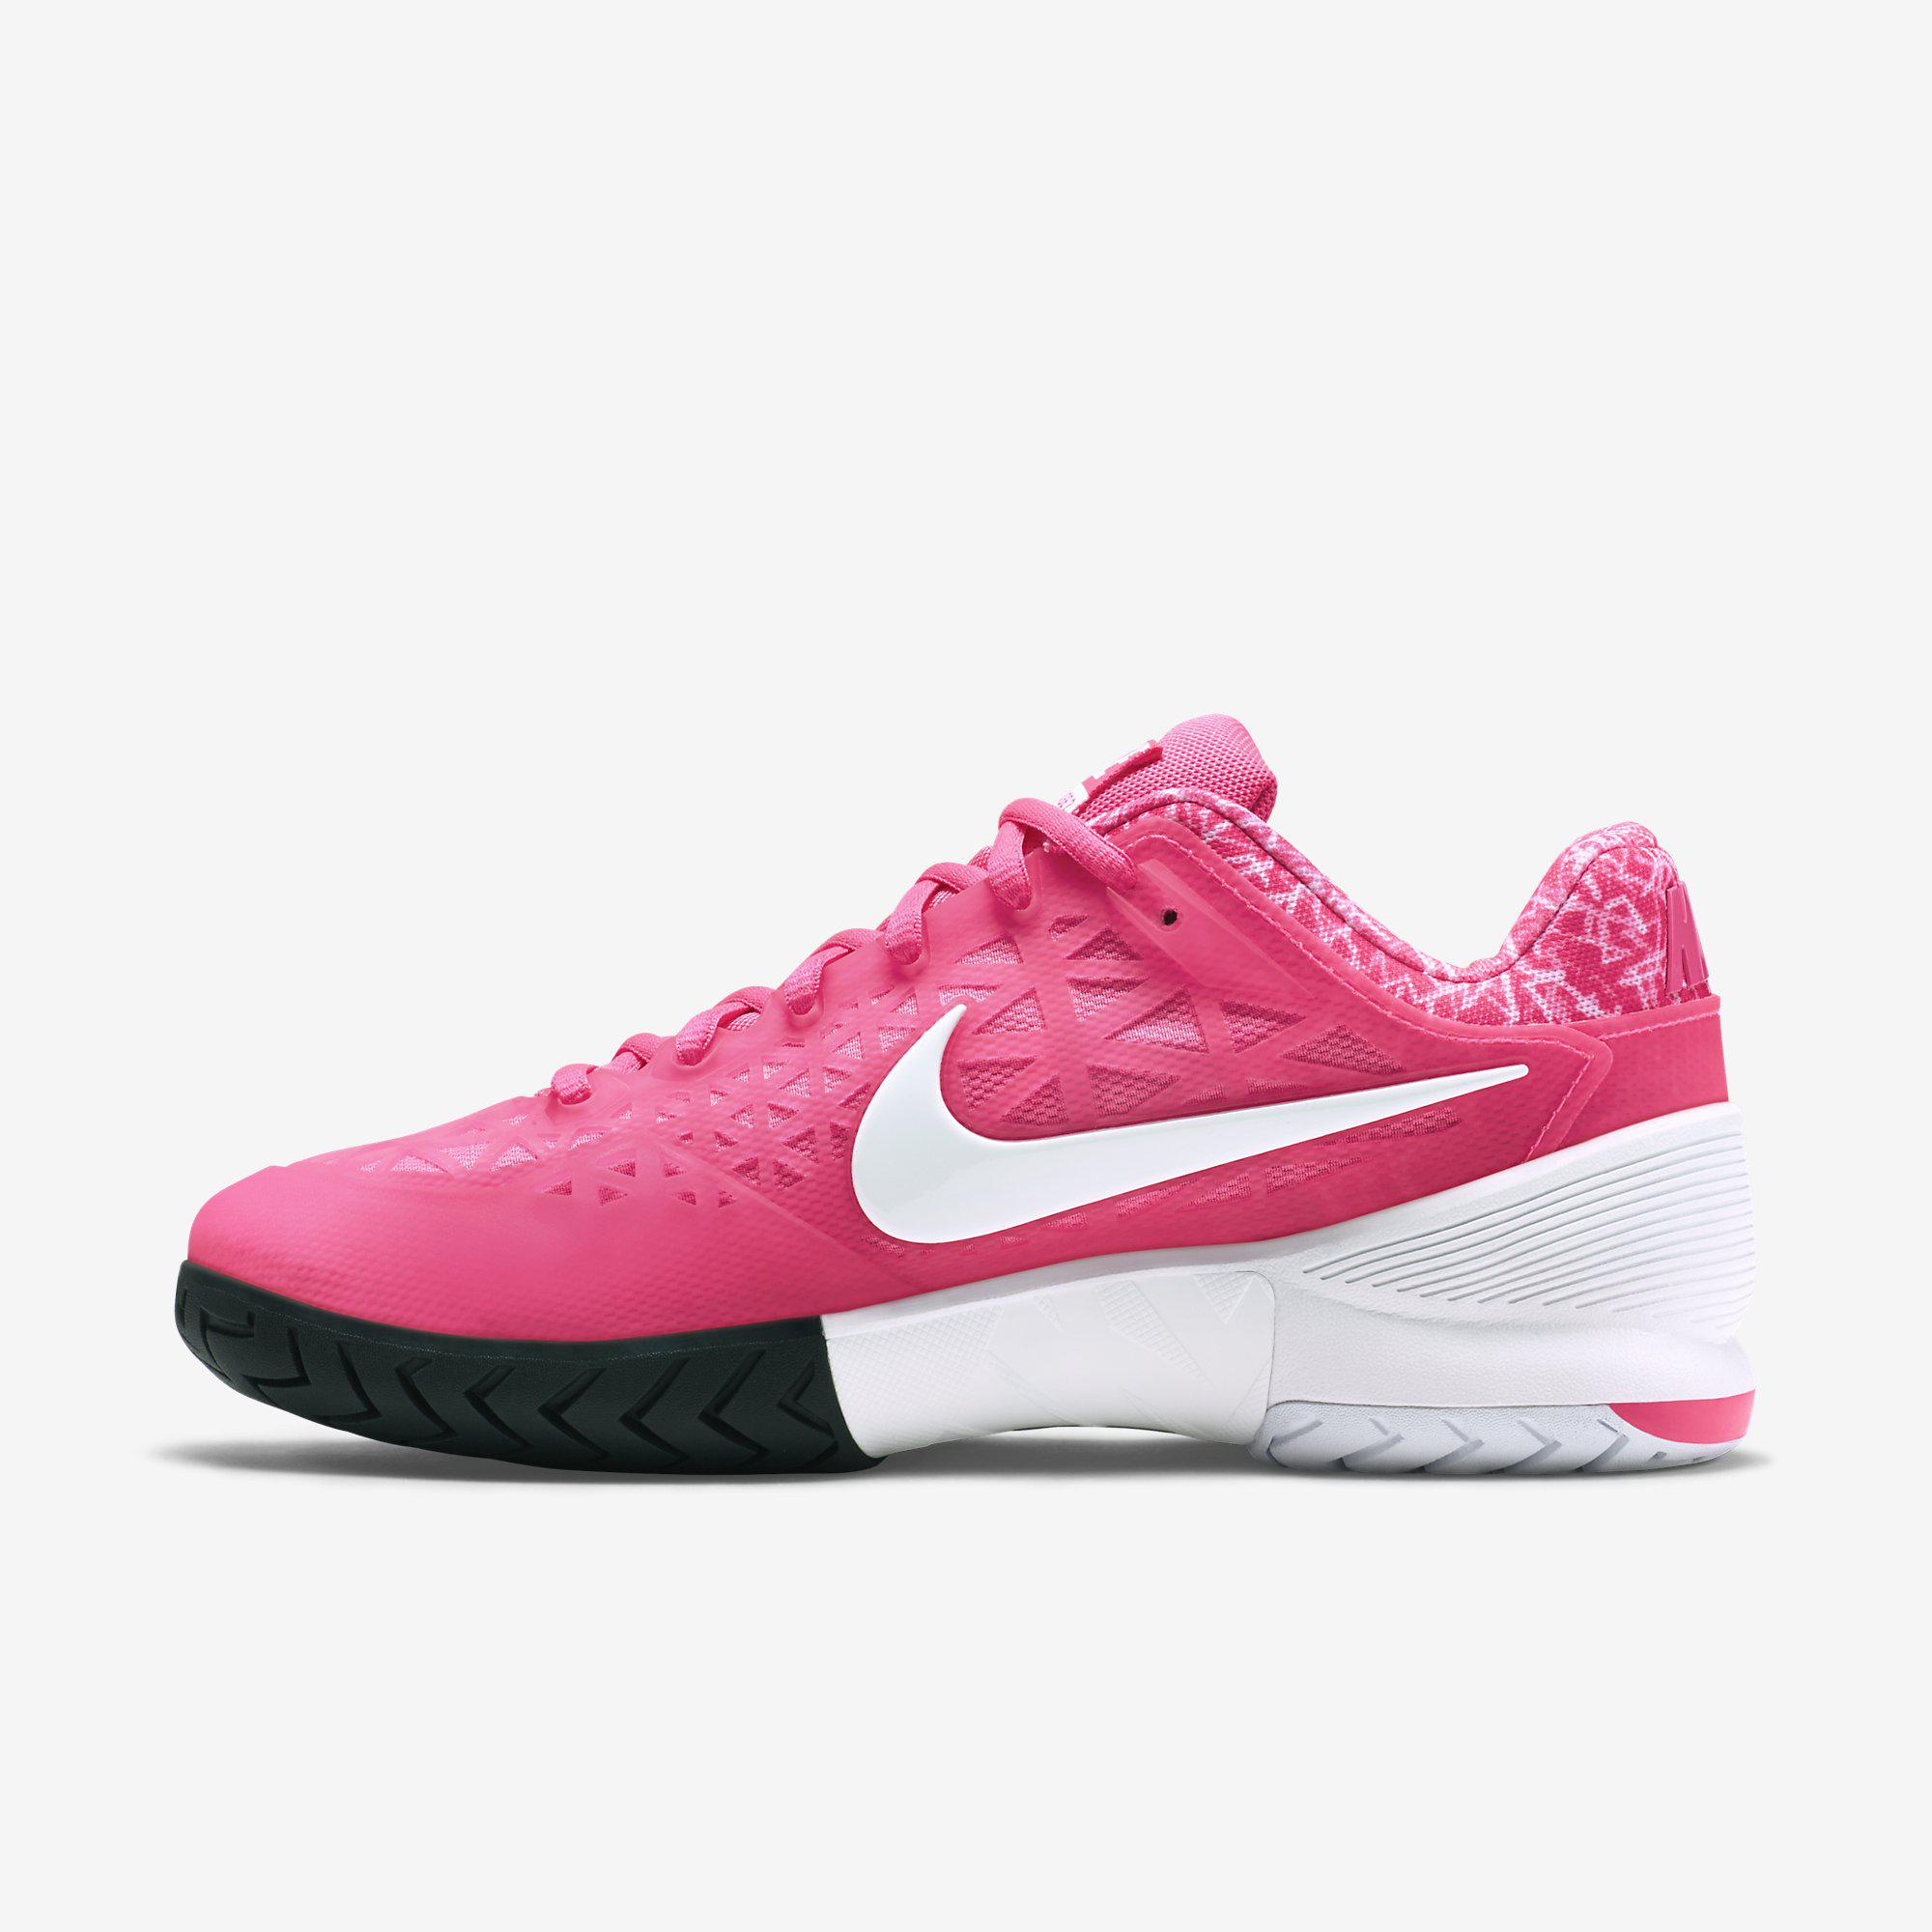 nike womens zoom cage 2 tennis shoes pink white